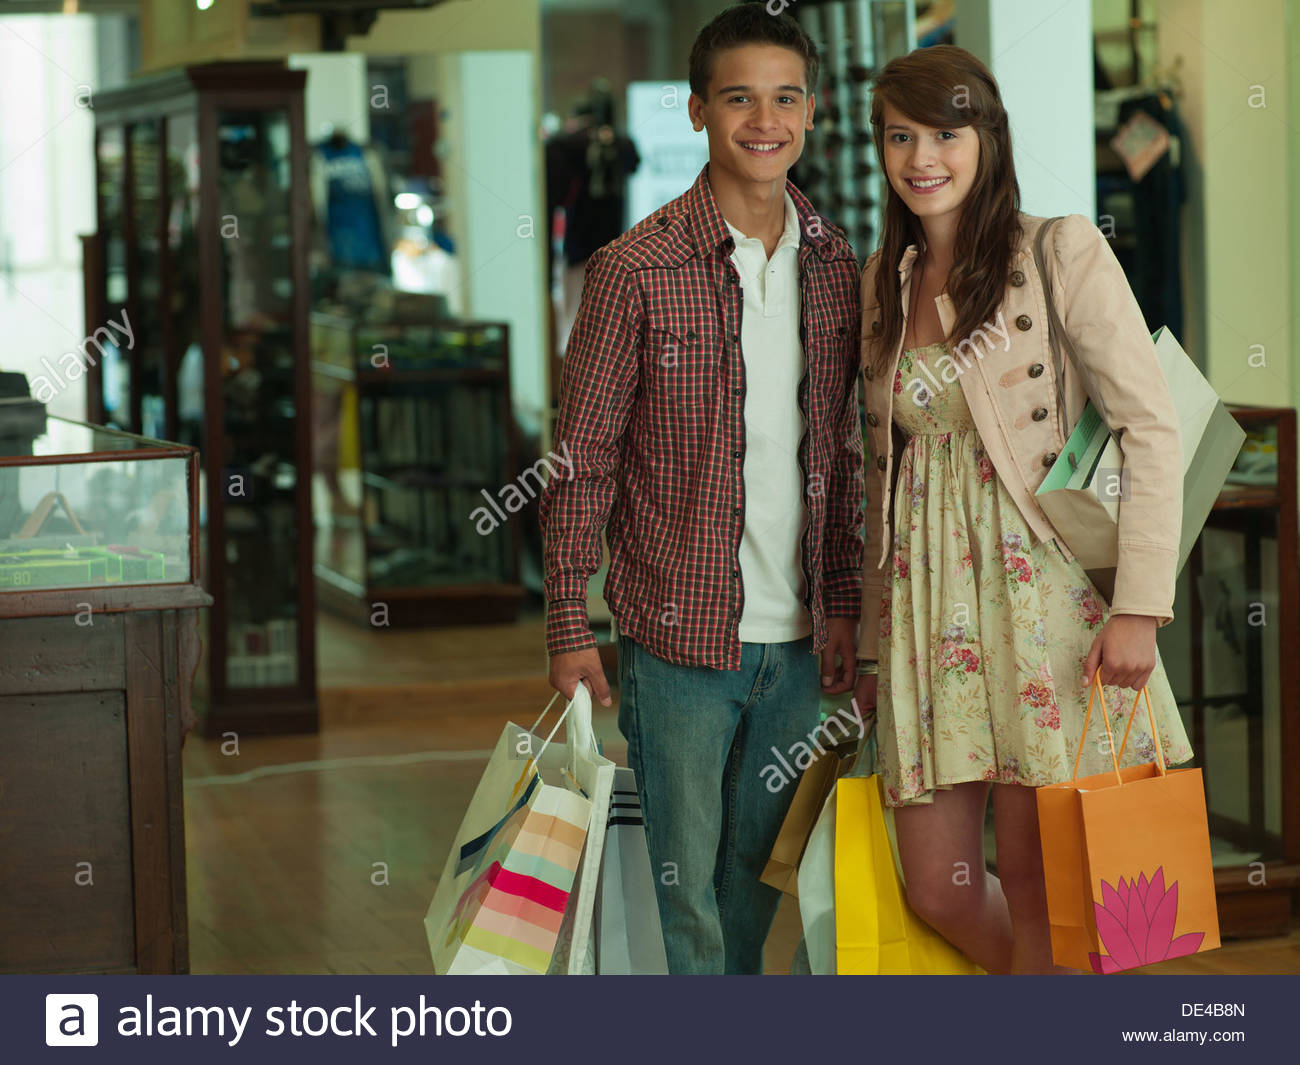 Smiling couple carrying shopping bags in clothing store Photo Stock